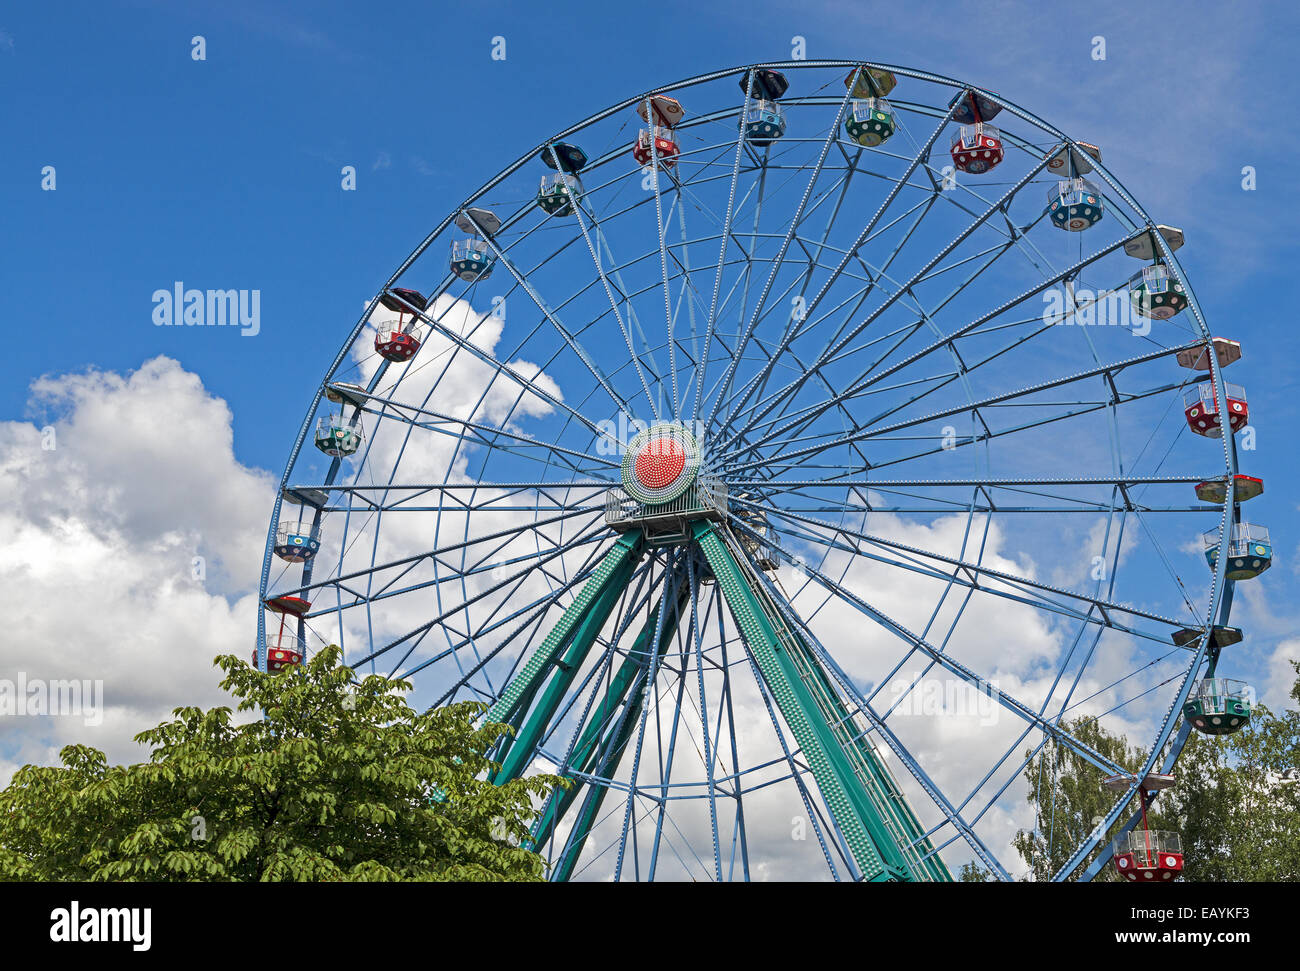 The Rinkeli a 32m tall Ferris wheel that opened in 2006 at Linnanmäki amusement park in Helsinki, Finland - Stock Image